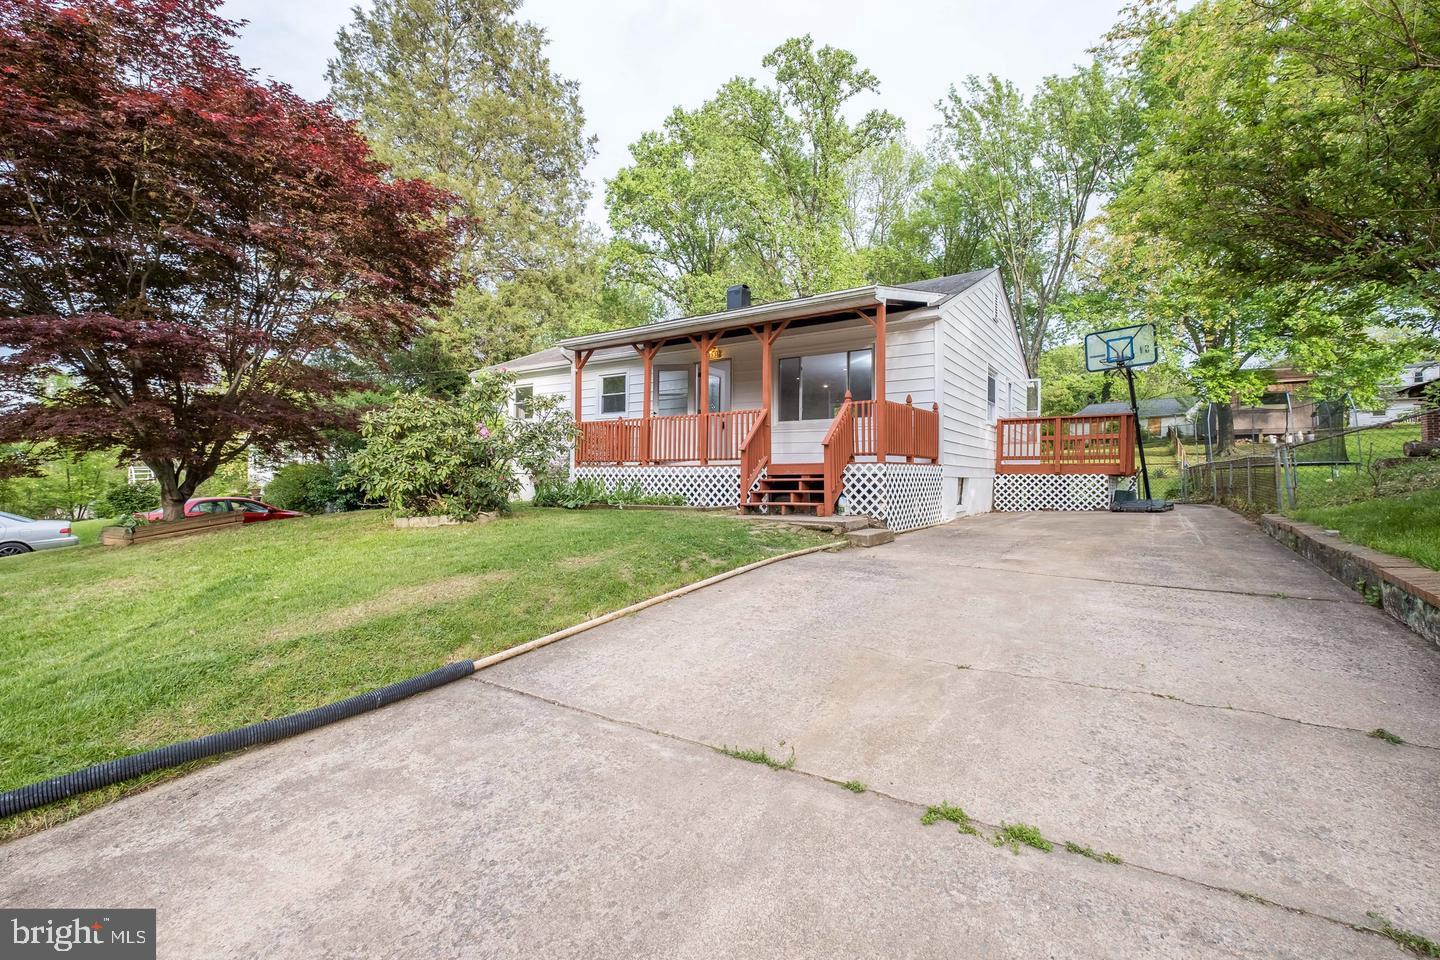 WELCOME HOME! This is the one you've been waiting for! Beautiful updated from top to bottom and well